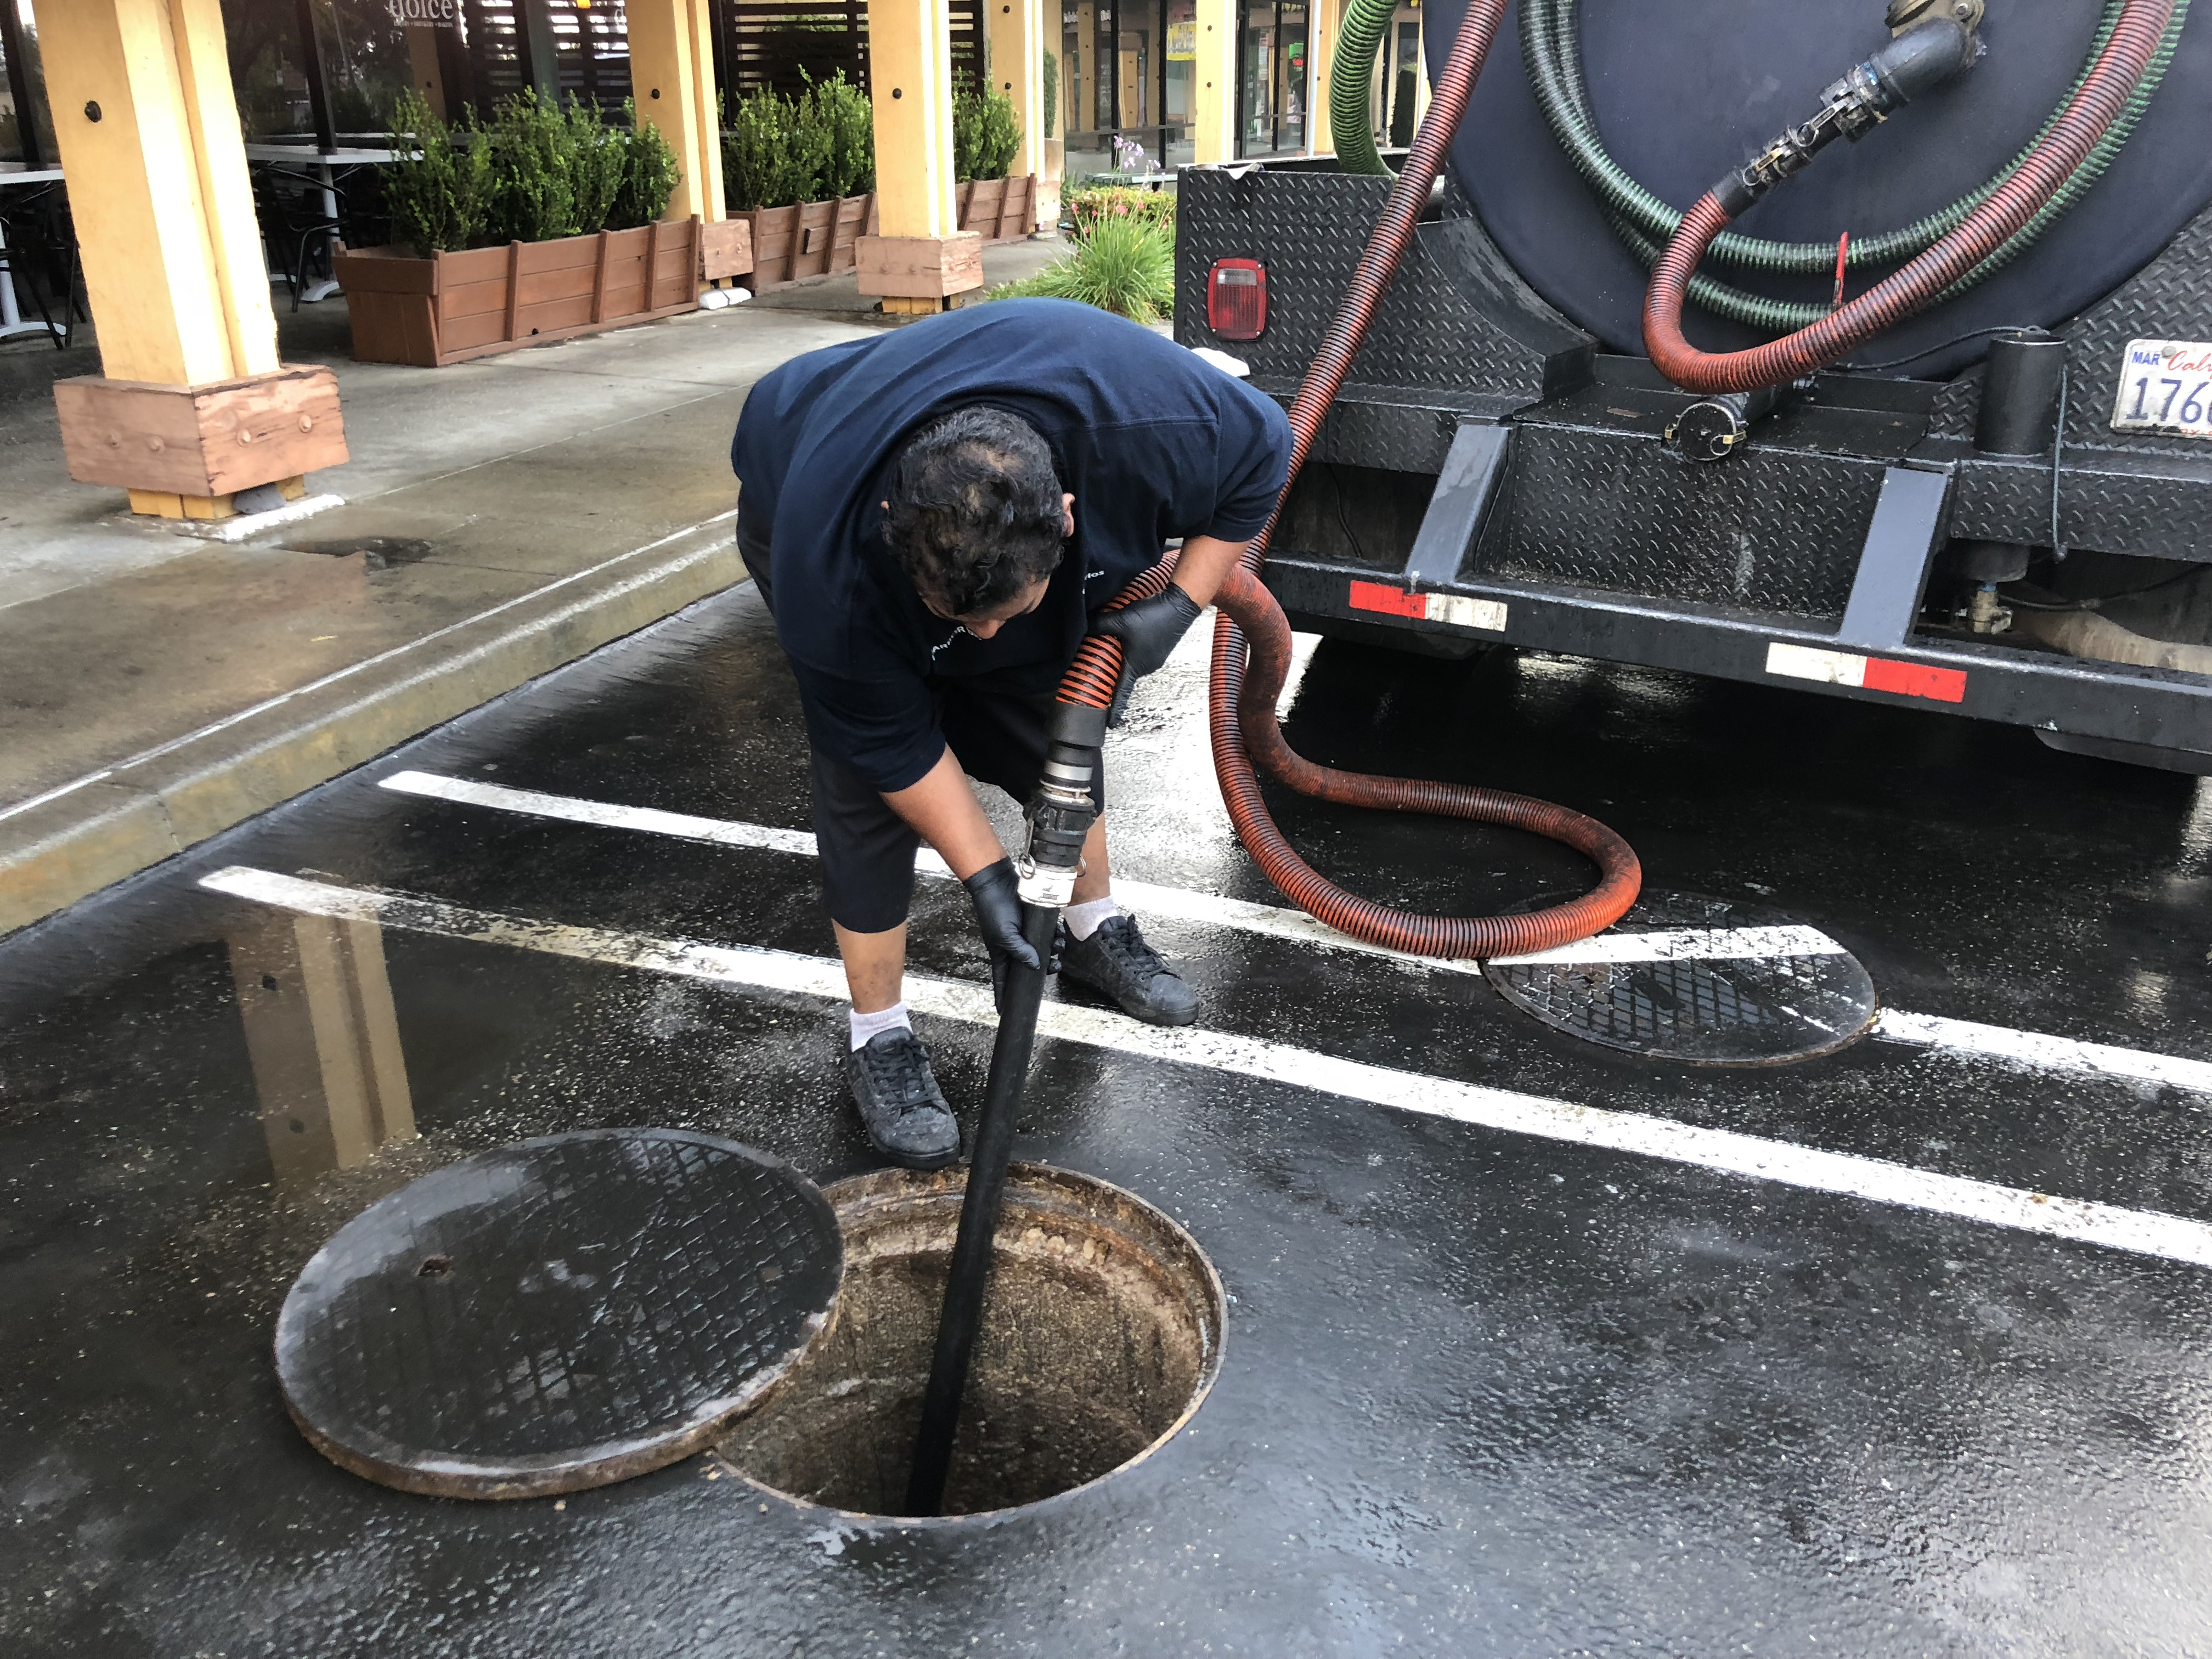 Grease Interceptor Cleaning Service. Outdoo grease trap pumping service for restaurants.